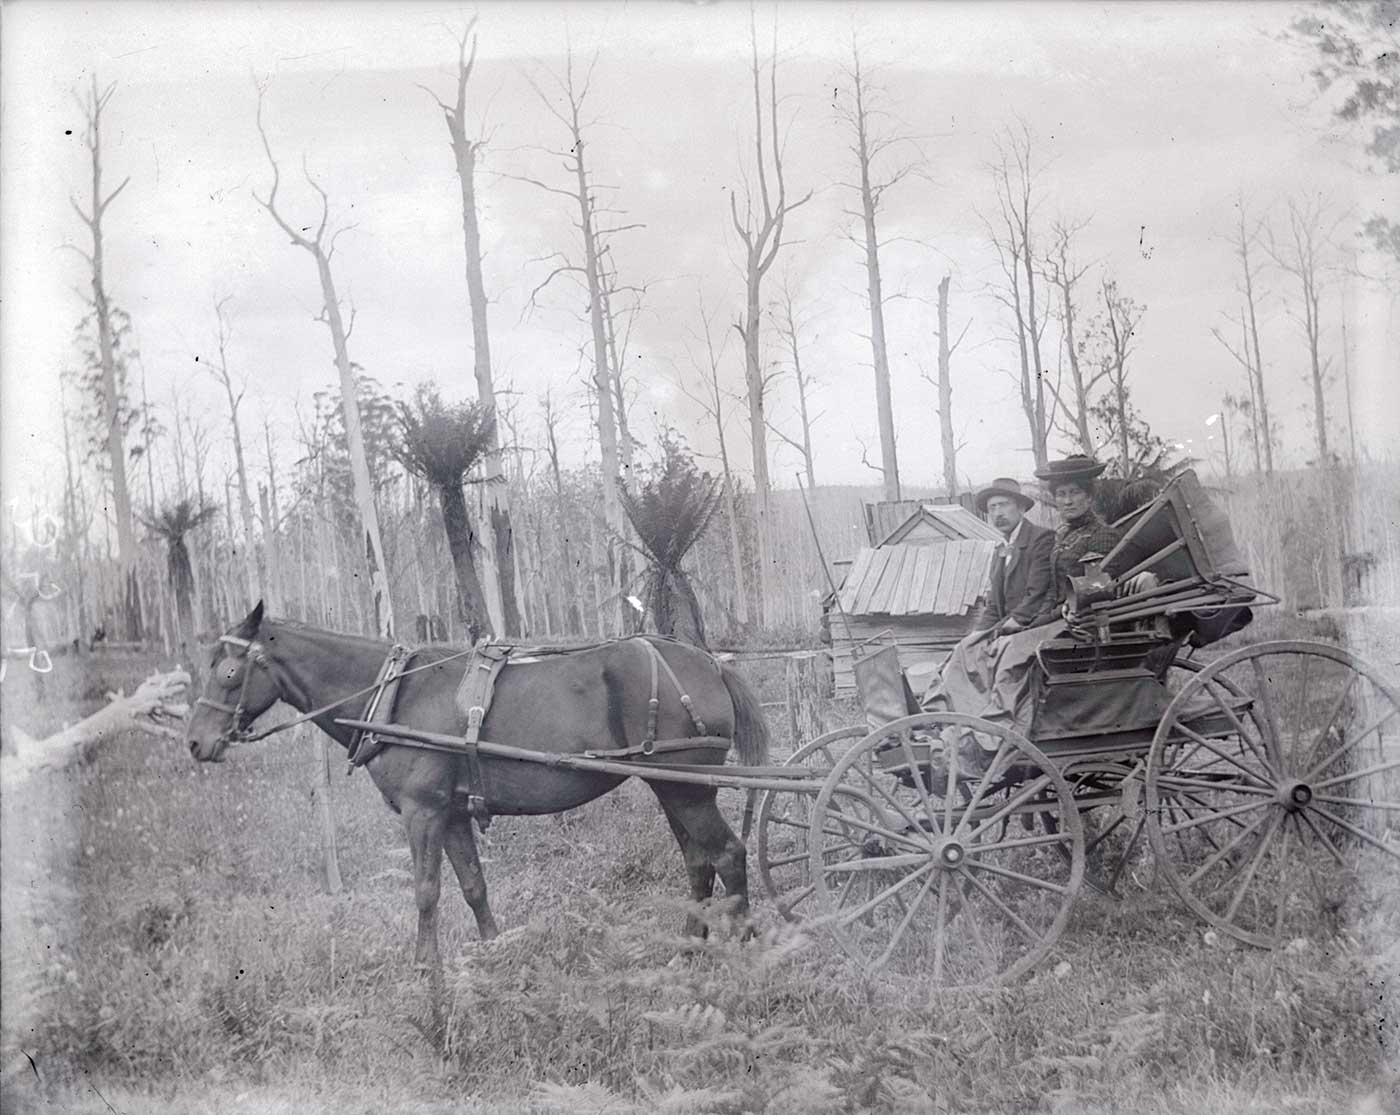 A photographic glass plate negative showing a man and a woman riding in a horse-drawn buggy. In the background is a small wooden building surrounded by tall leafless trees and ferns. - click to view larger image